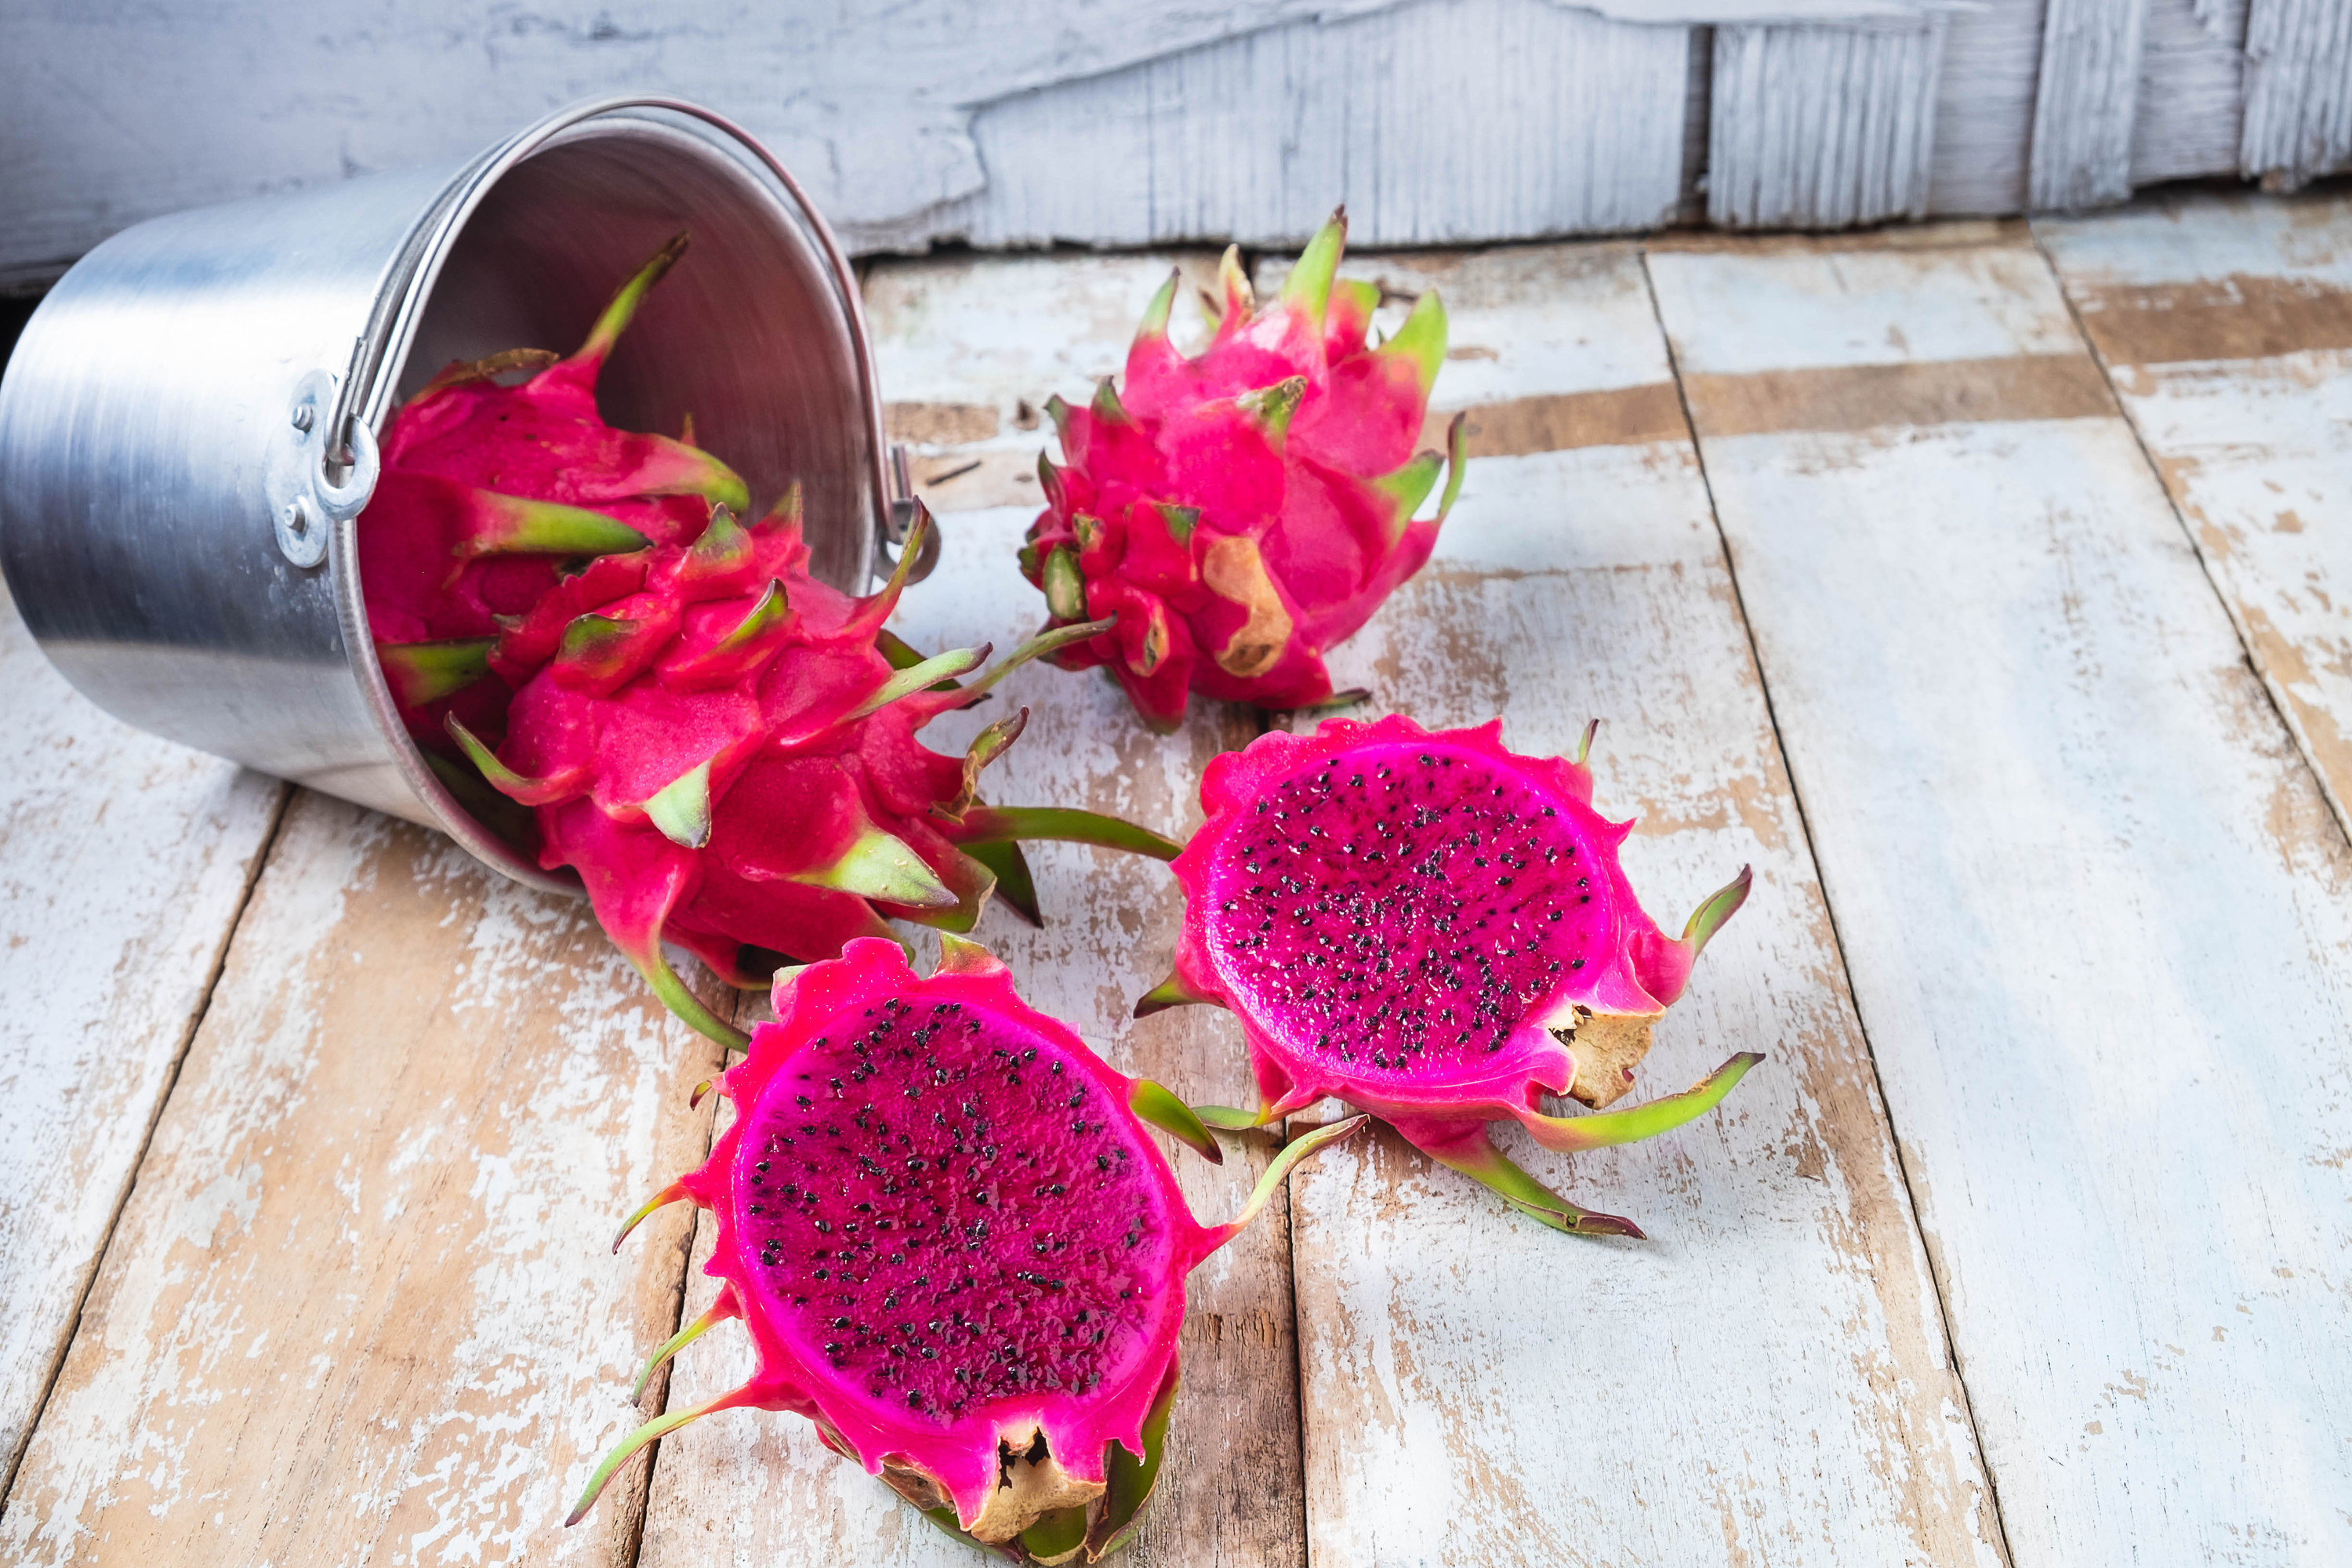 One dragon fruit is in a metal bucket tilted to the side. Two dragon fruits are on wood, and one dragon fruit that has been cut in half is also on the wood